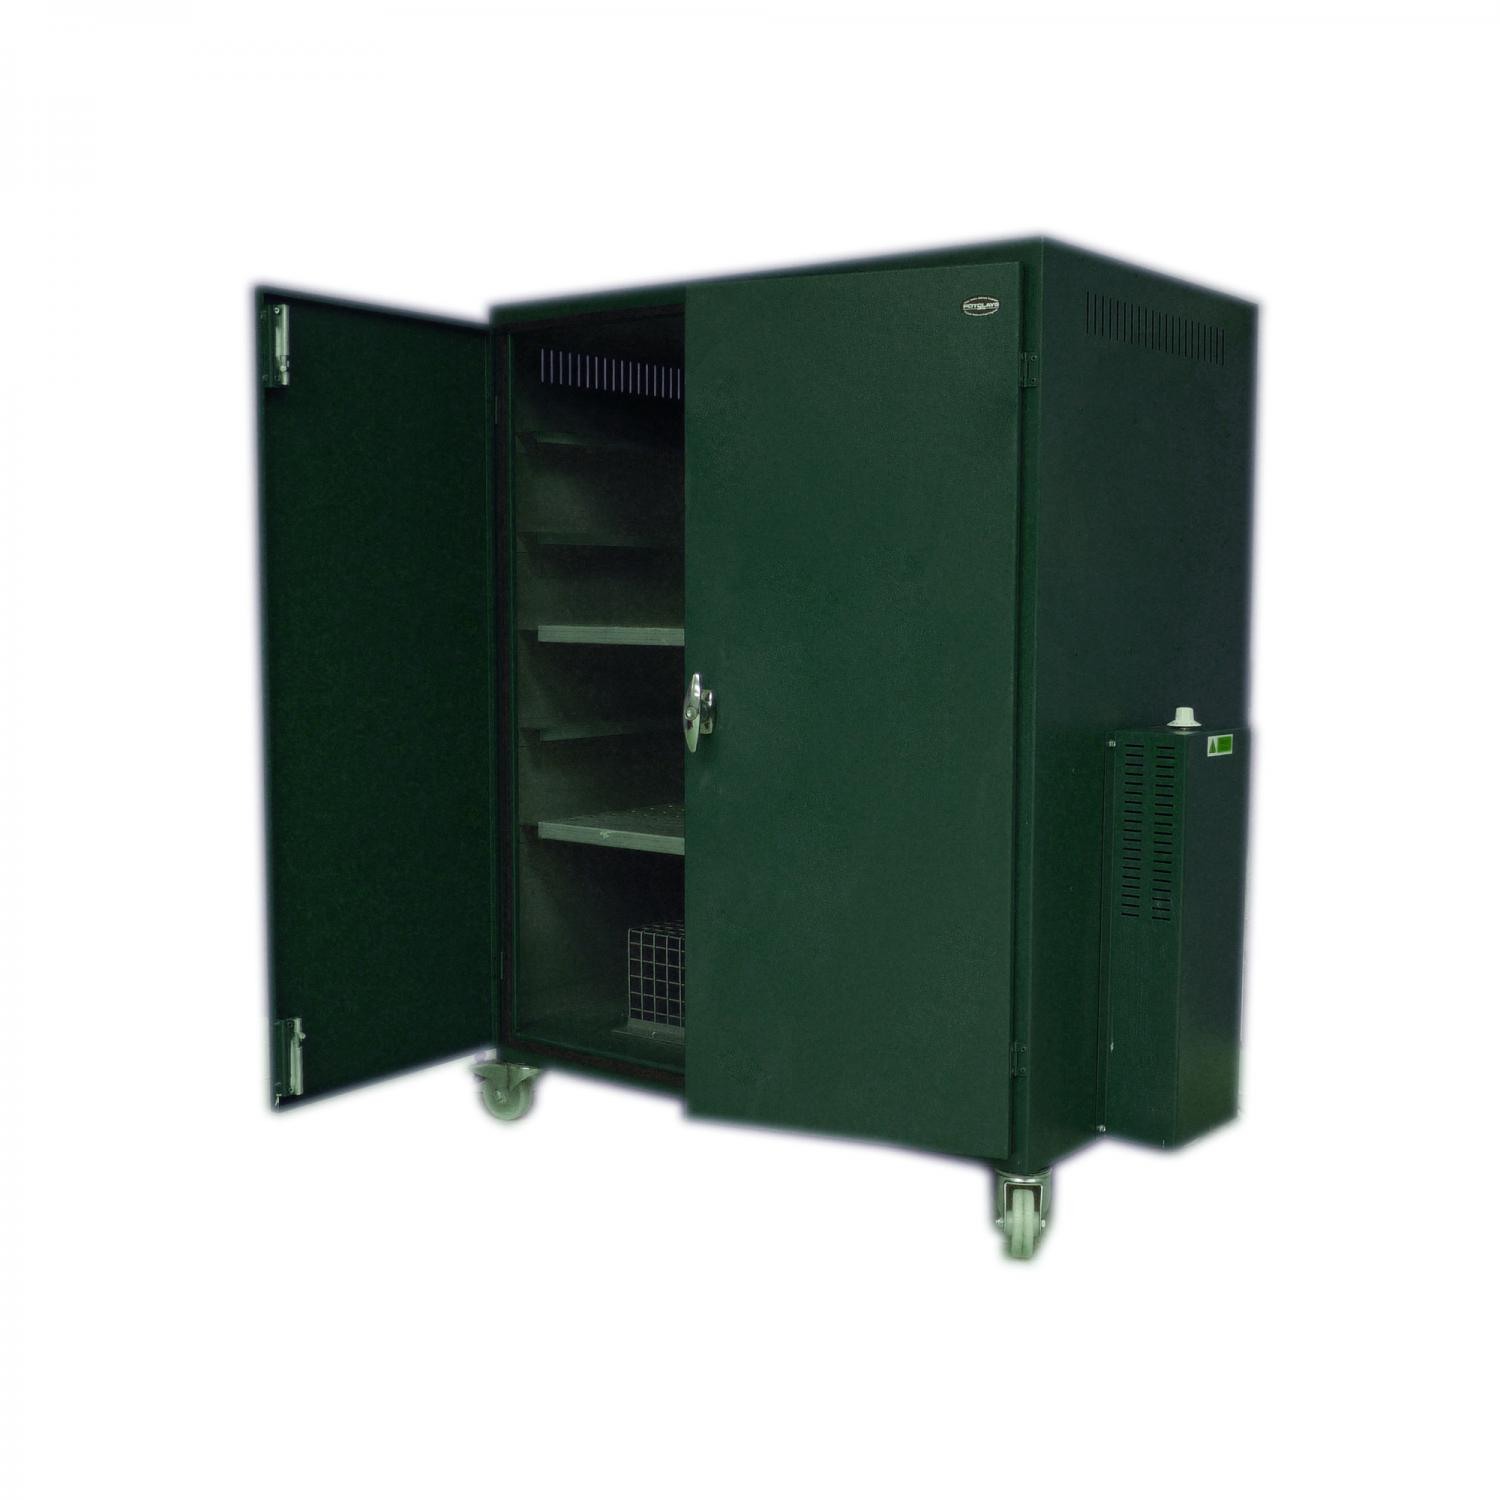 Drying Cabinet For Pottery Studio ~ Heated drying cabinet on castors h w d